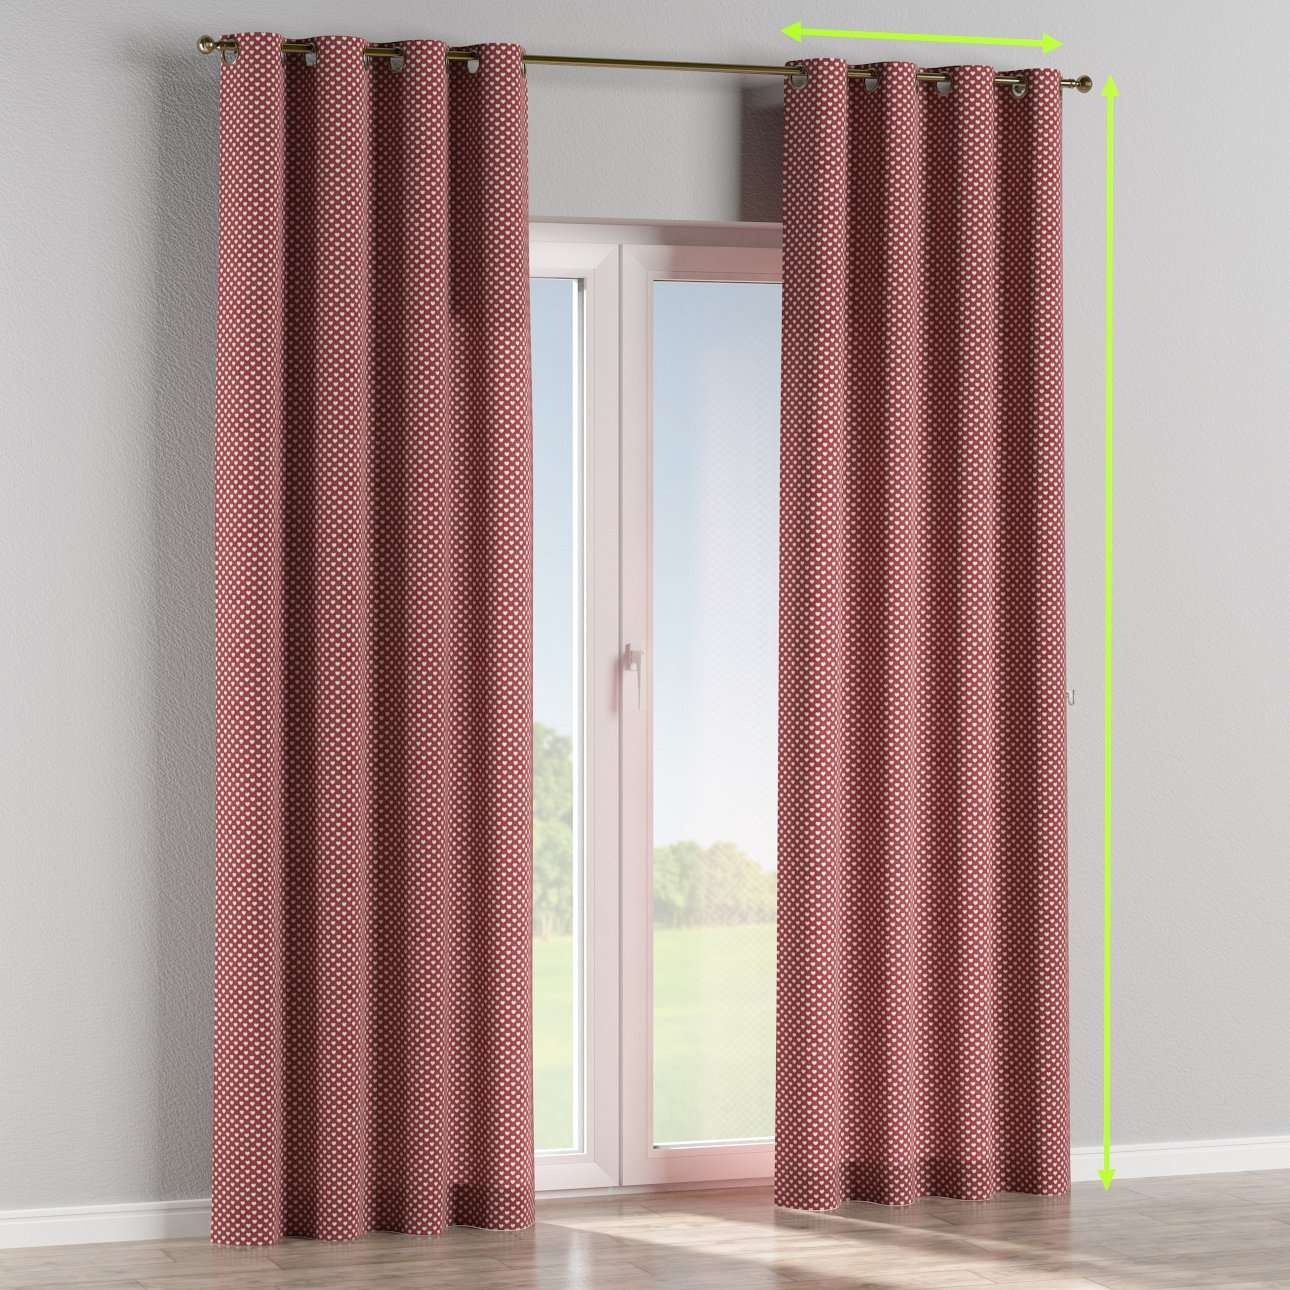 Eyelet curtains in collection Christmas , fabric: 630-40